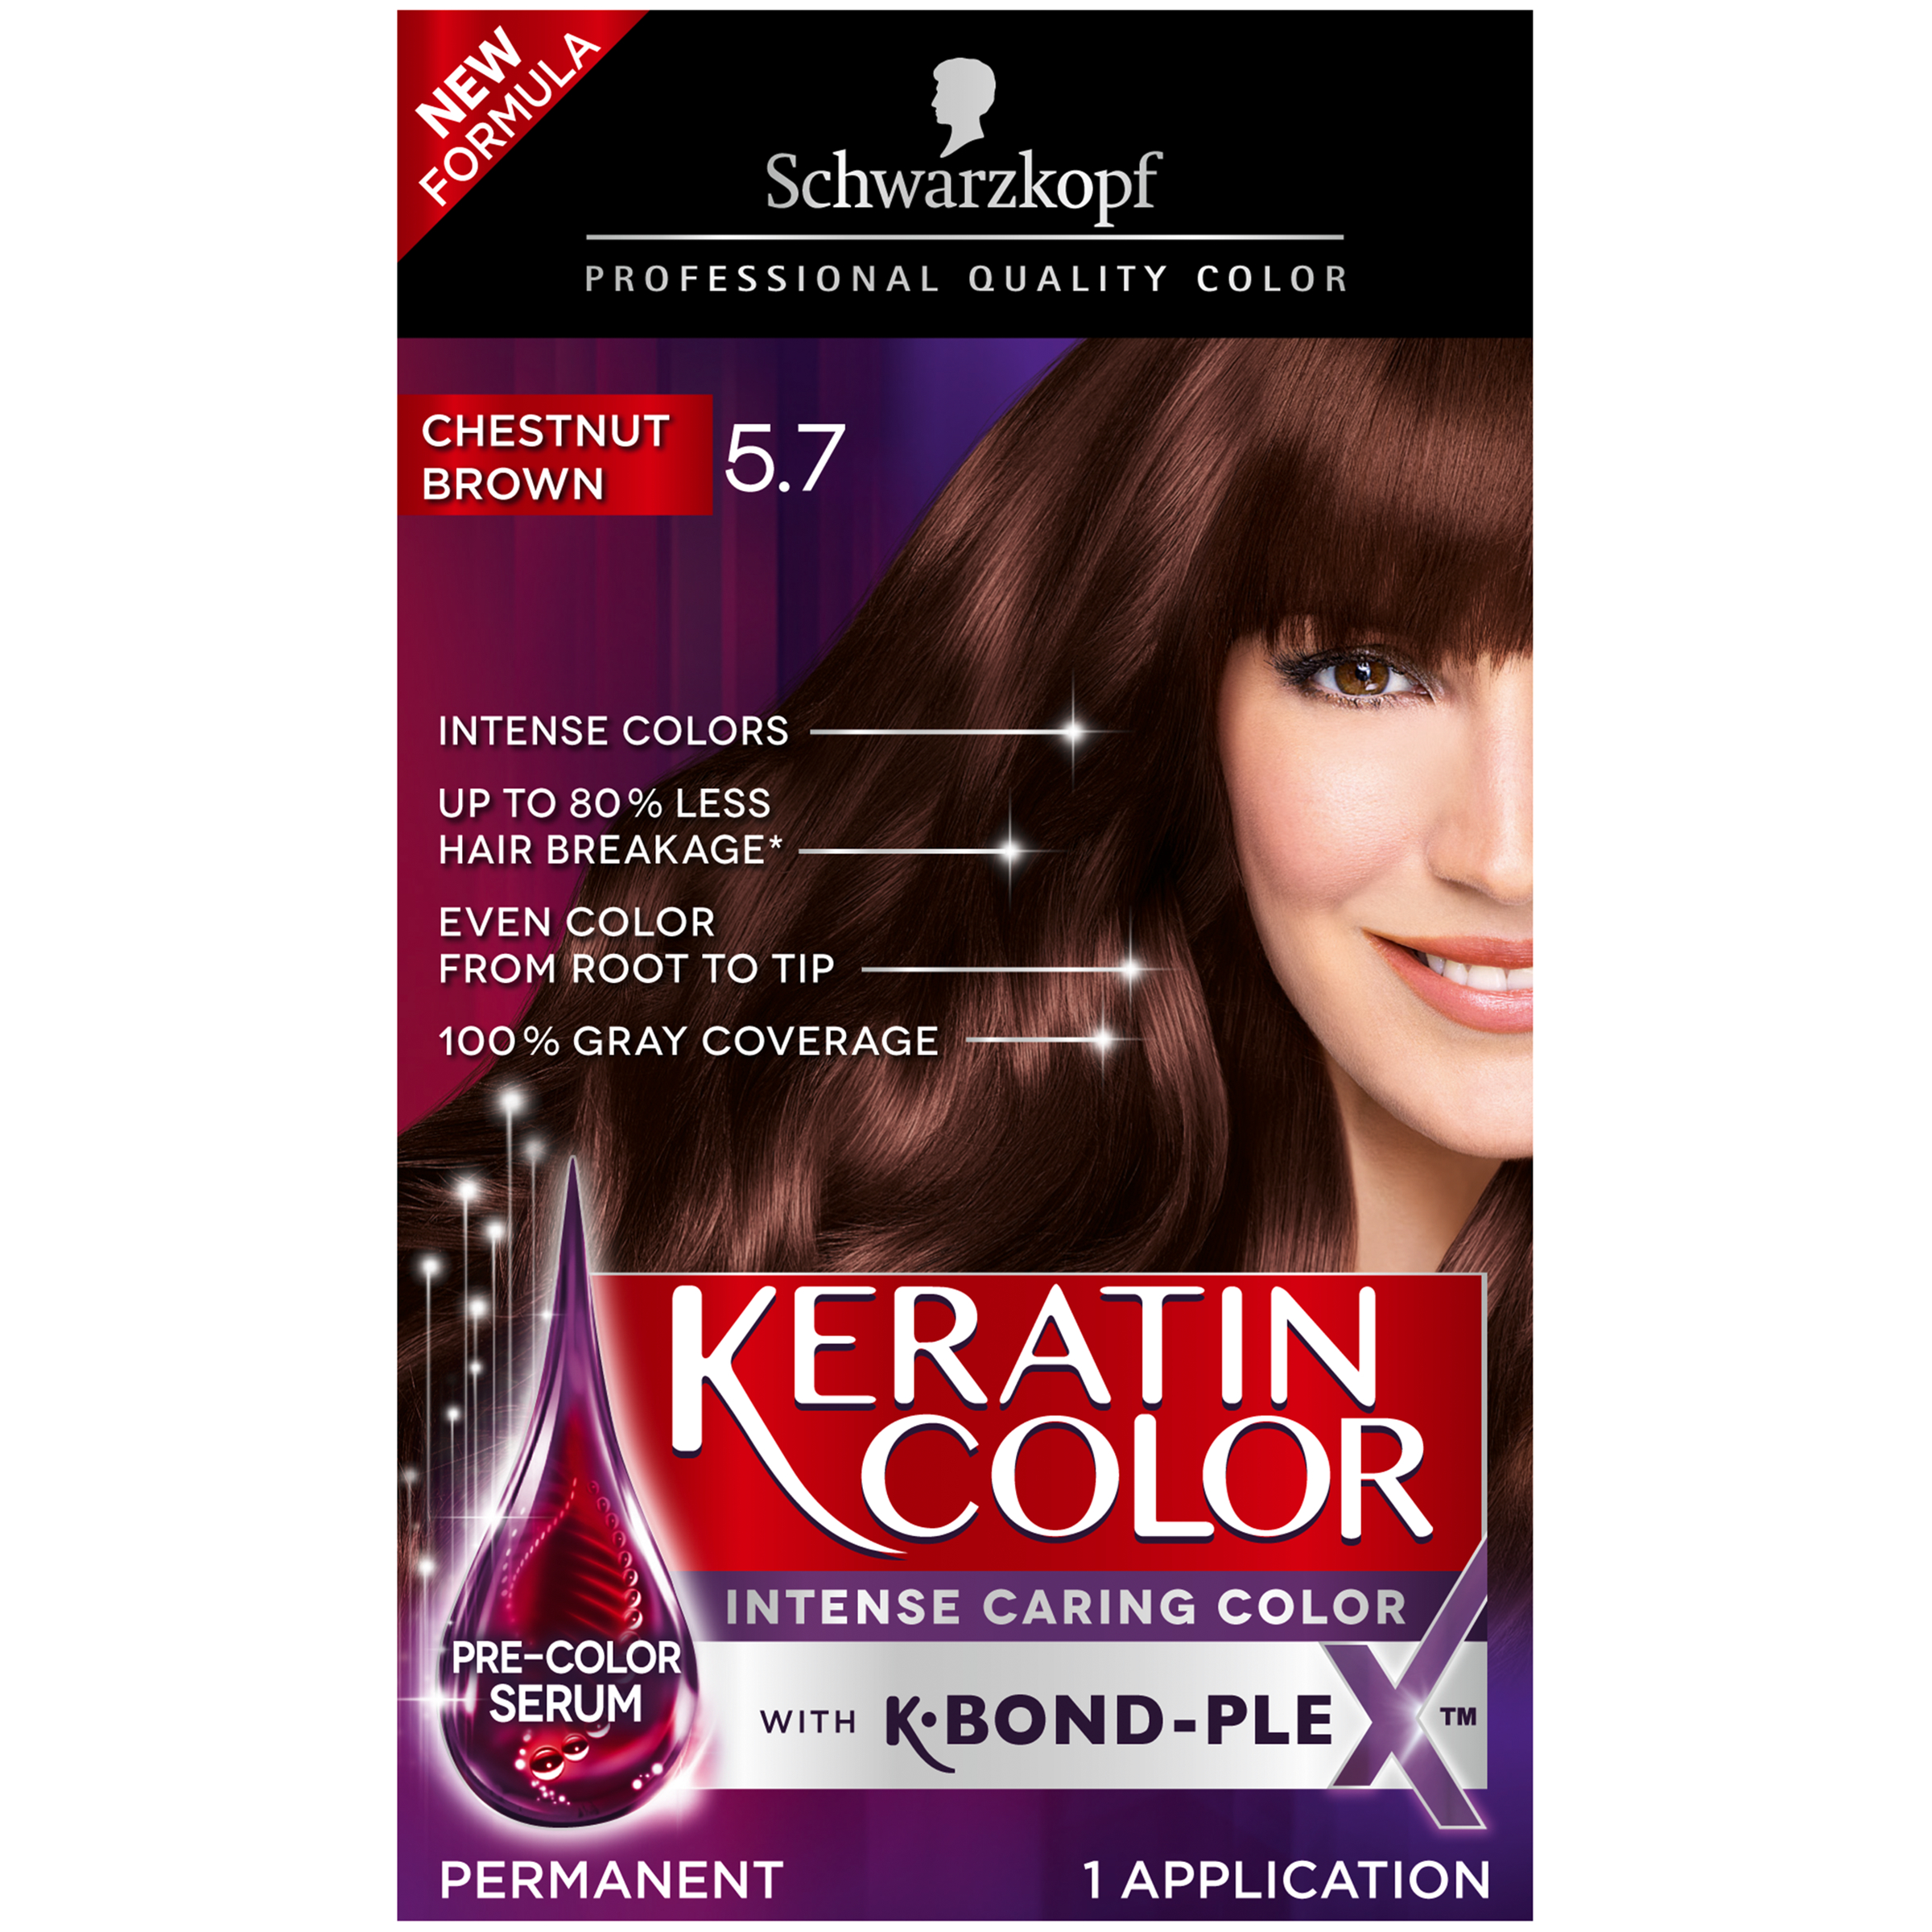 Schwarzkopf keratin color anti age hair color cream 53 berry brown schwarzkopf keratin color anti age hair color cream 53 berry brown walmart nvjuhfo Image collections